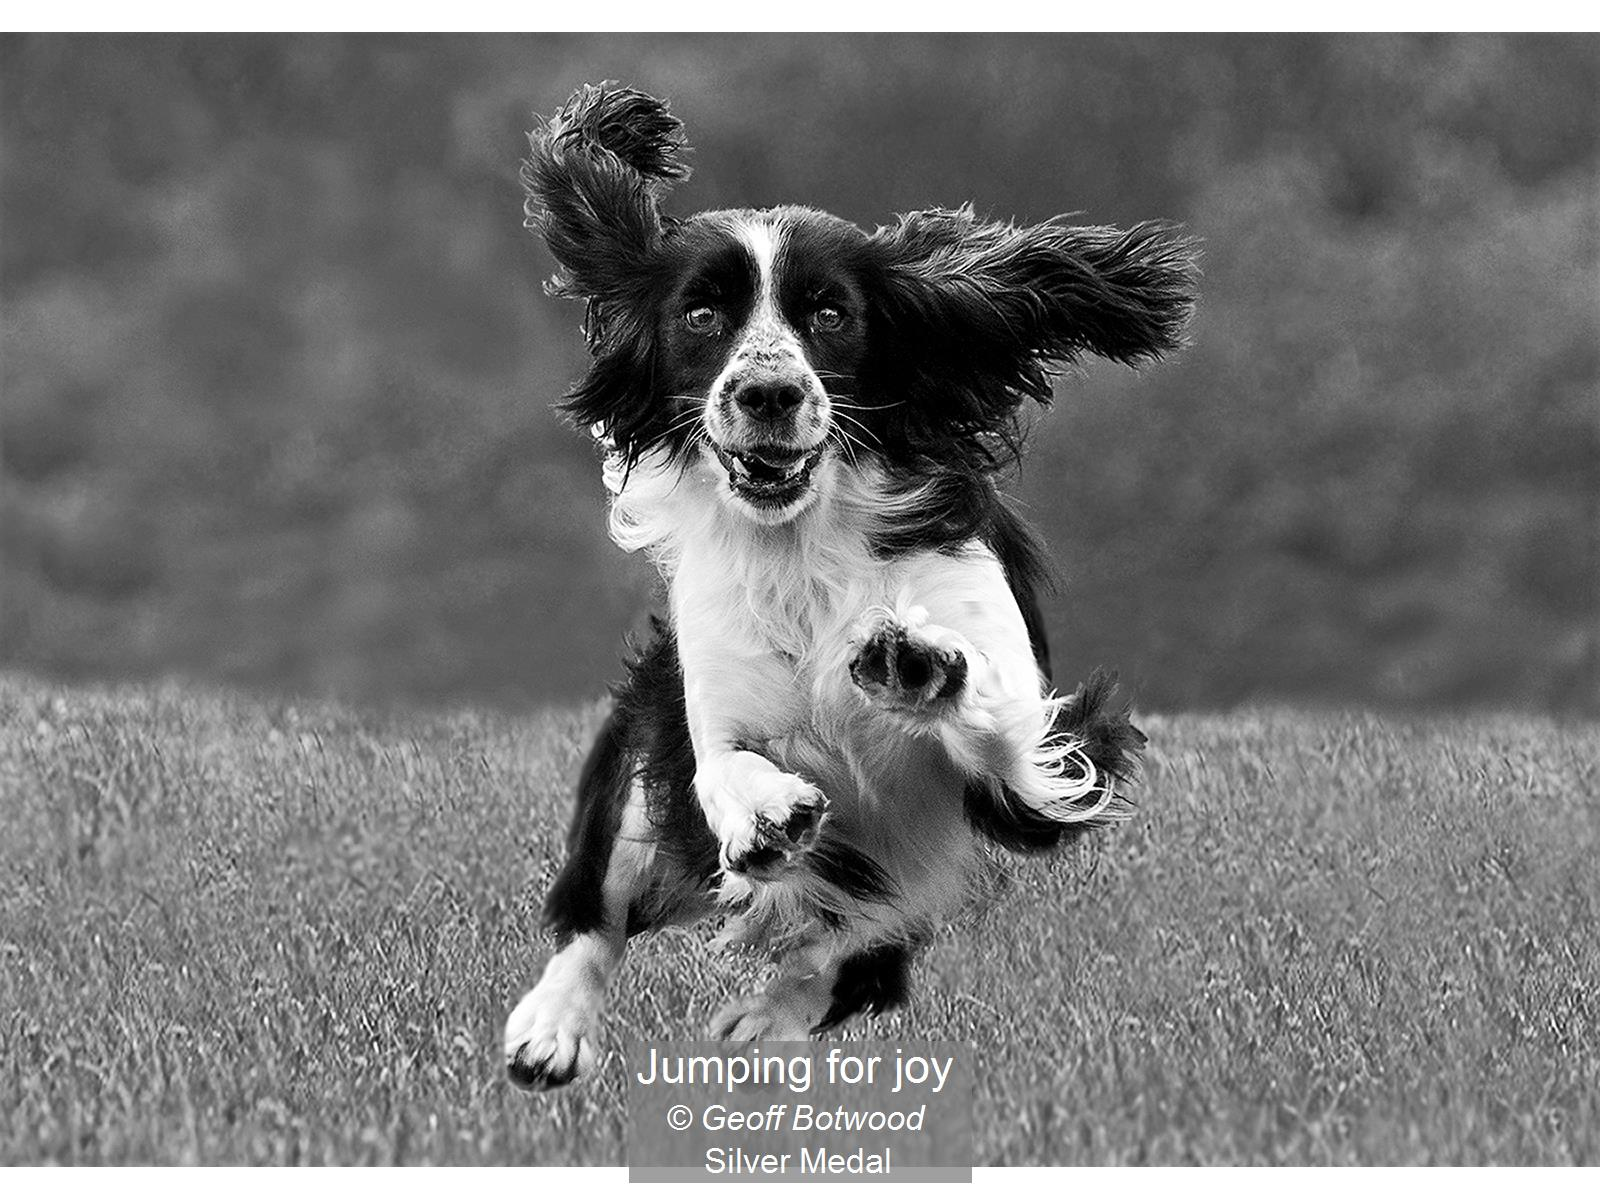 Jumping for joy_Geoff Botwood_Silver